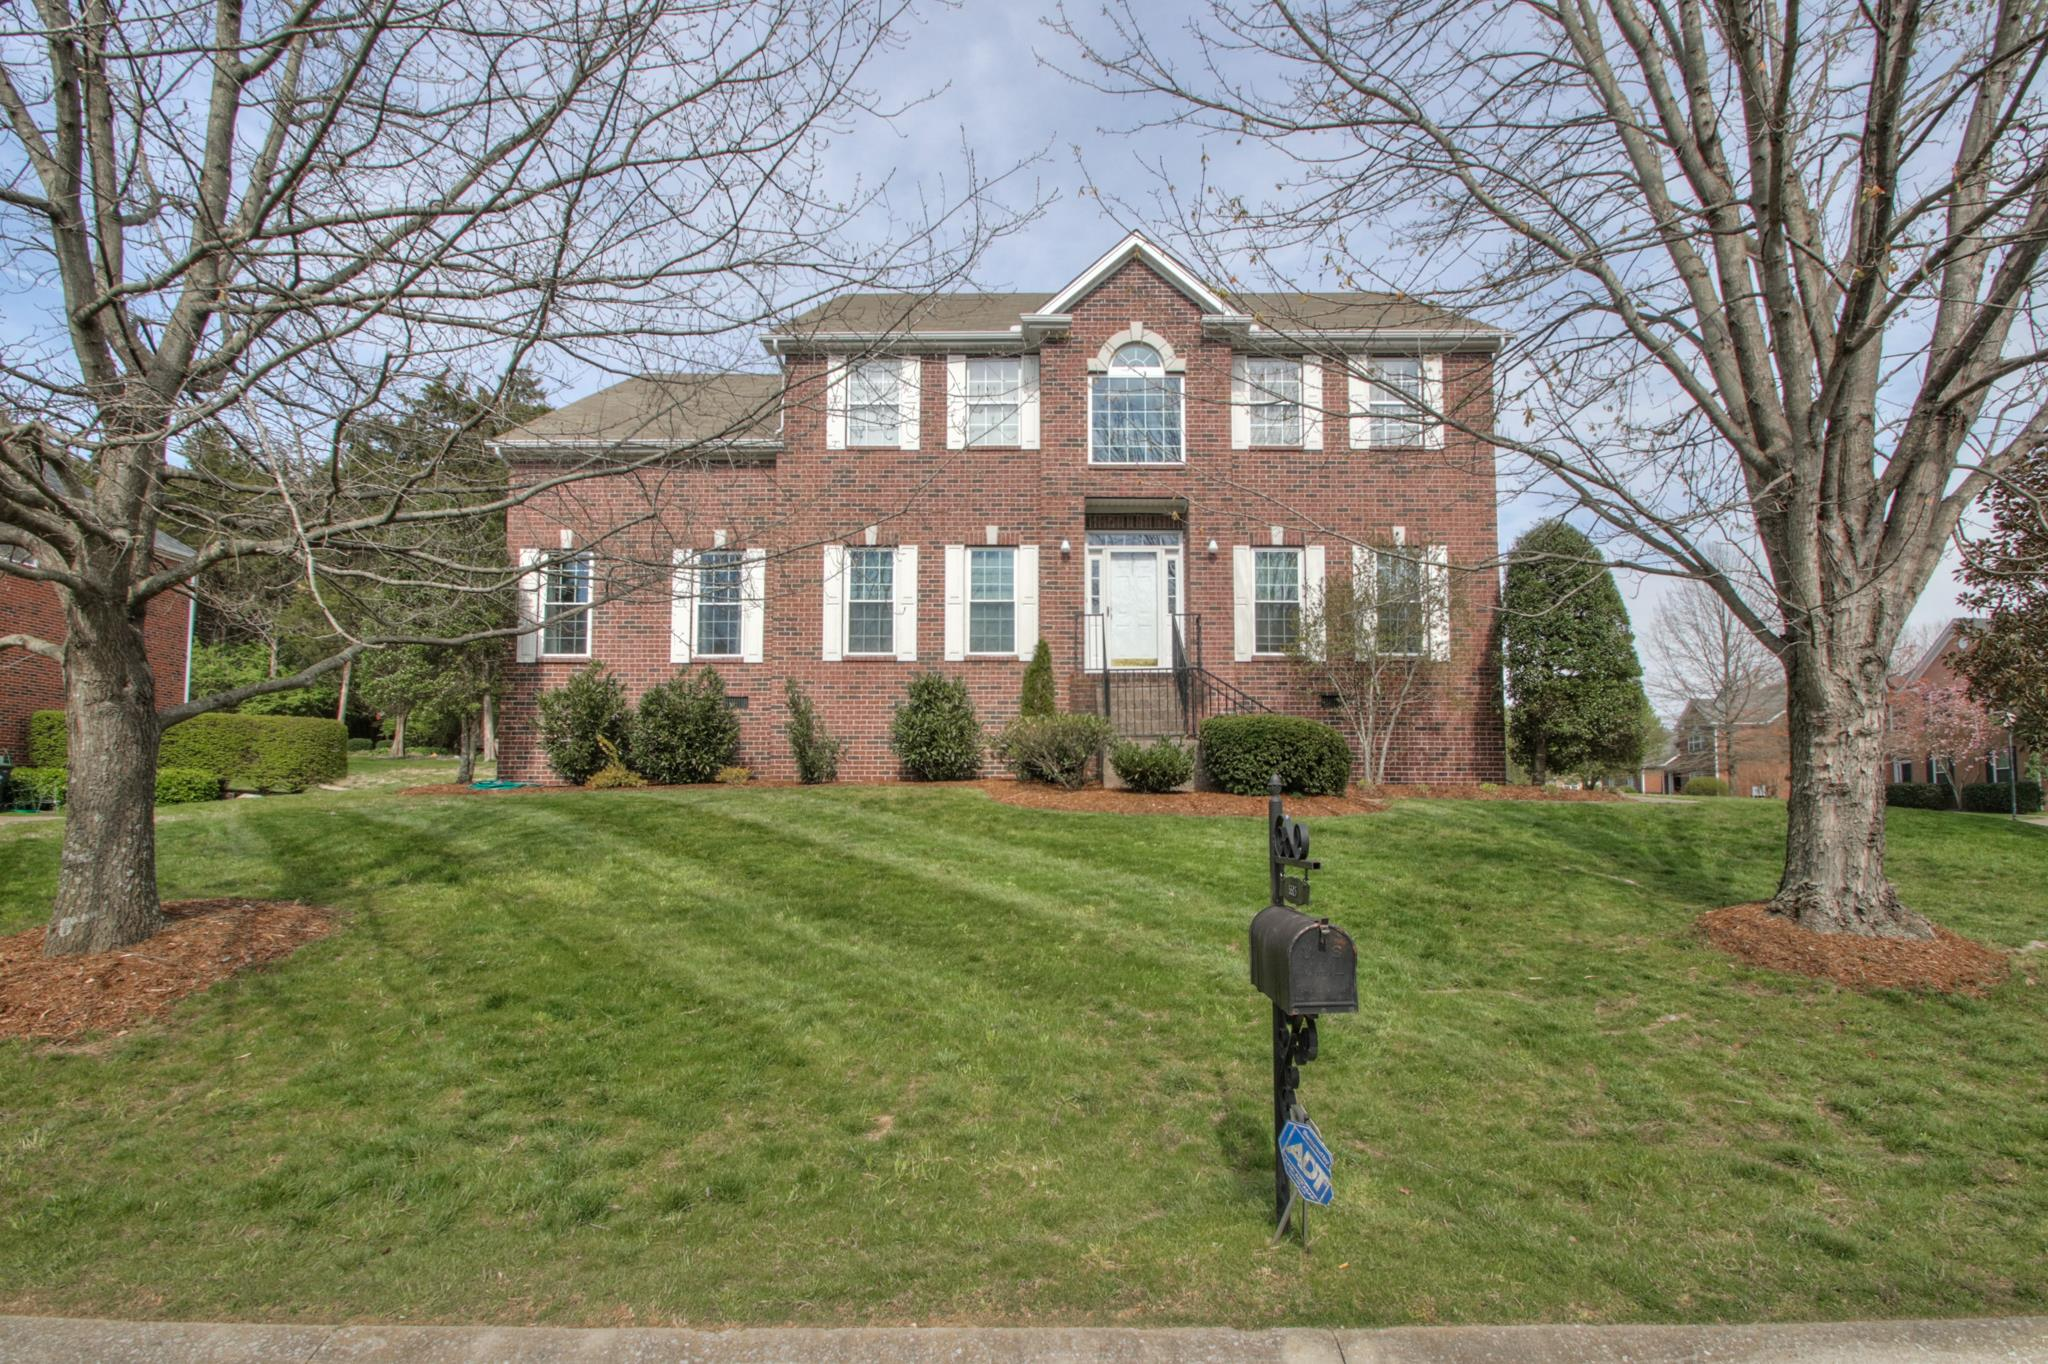 5525 Traceside Dr, Bellevue, Tennessee